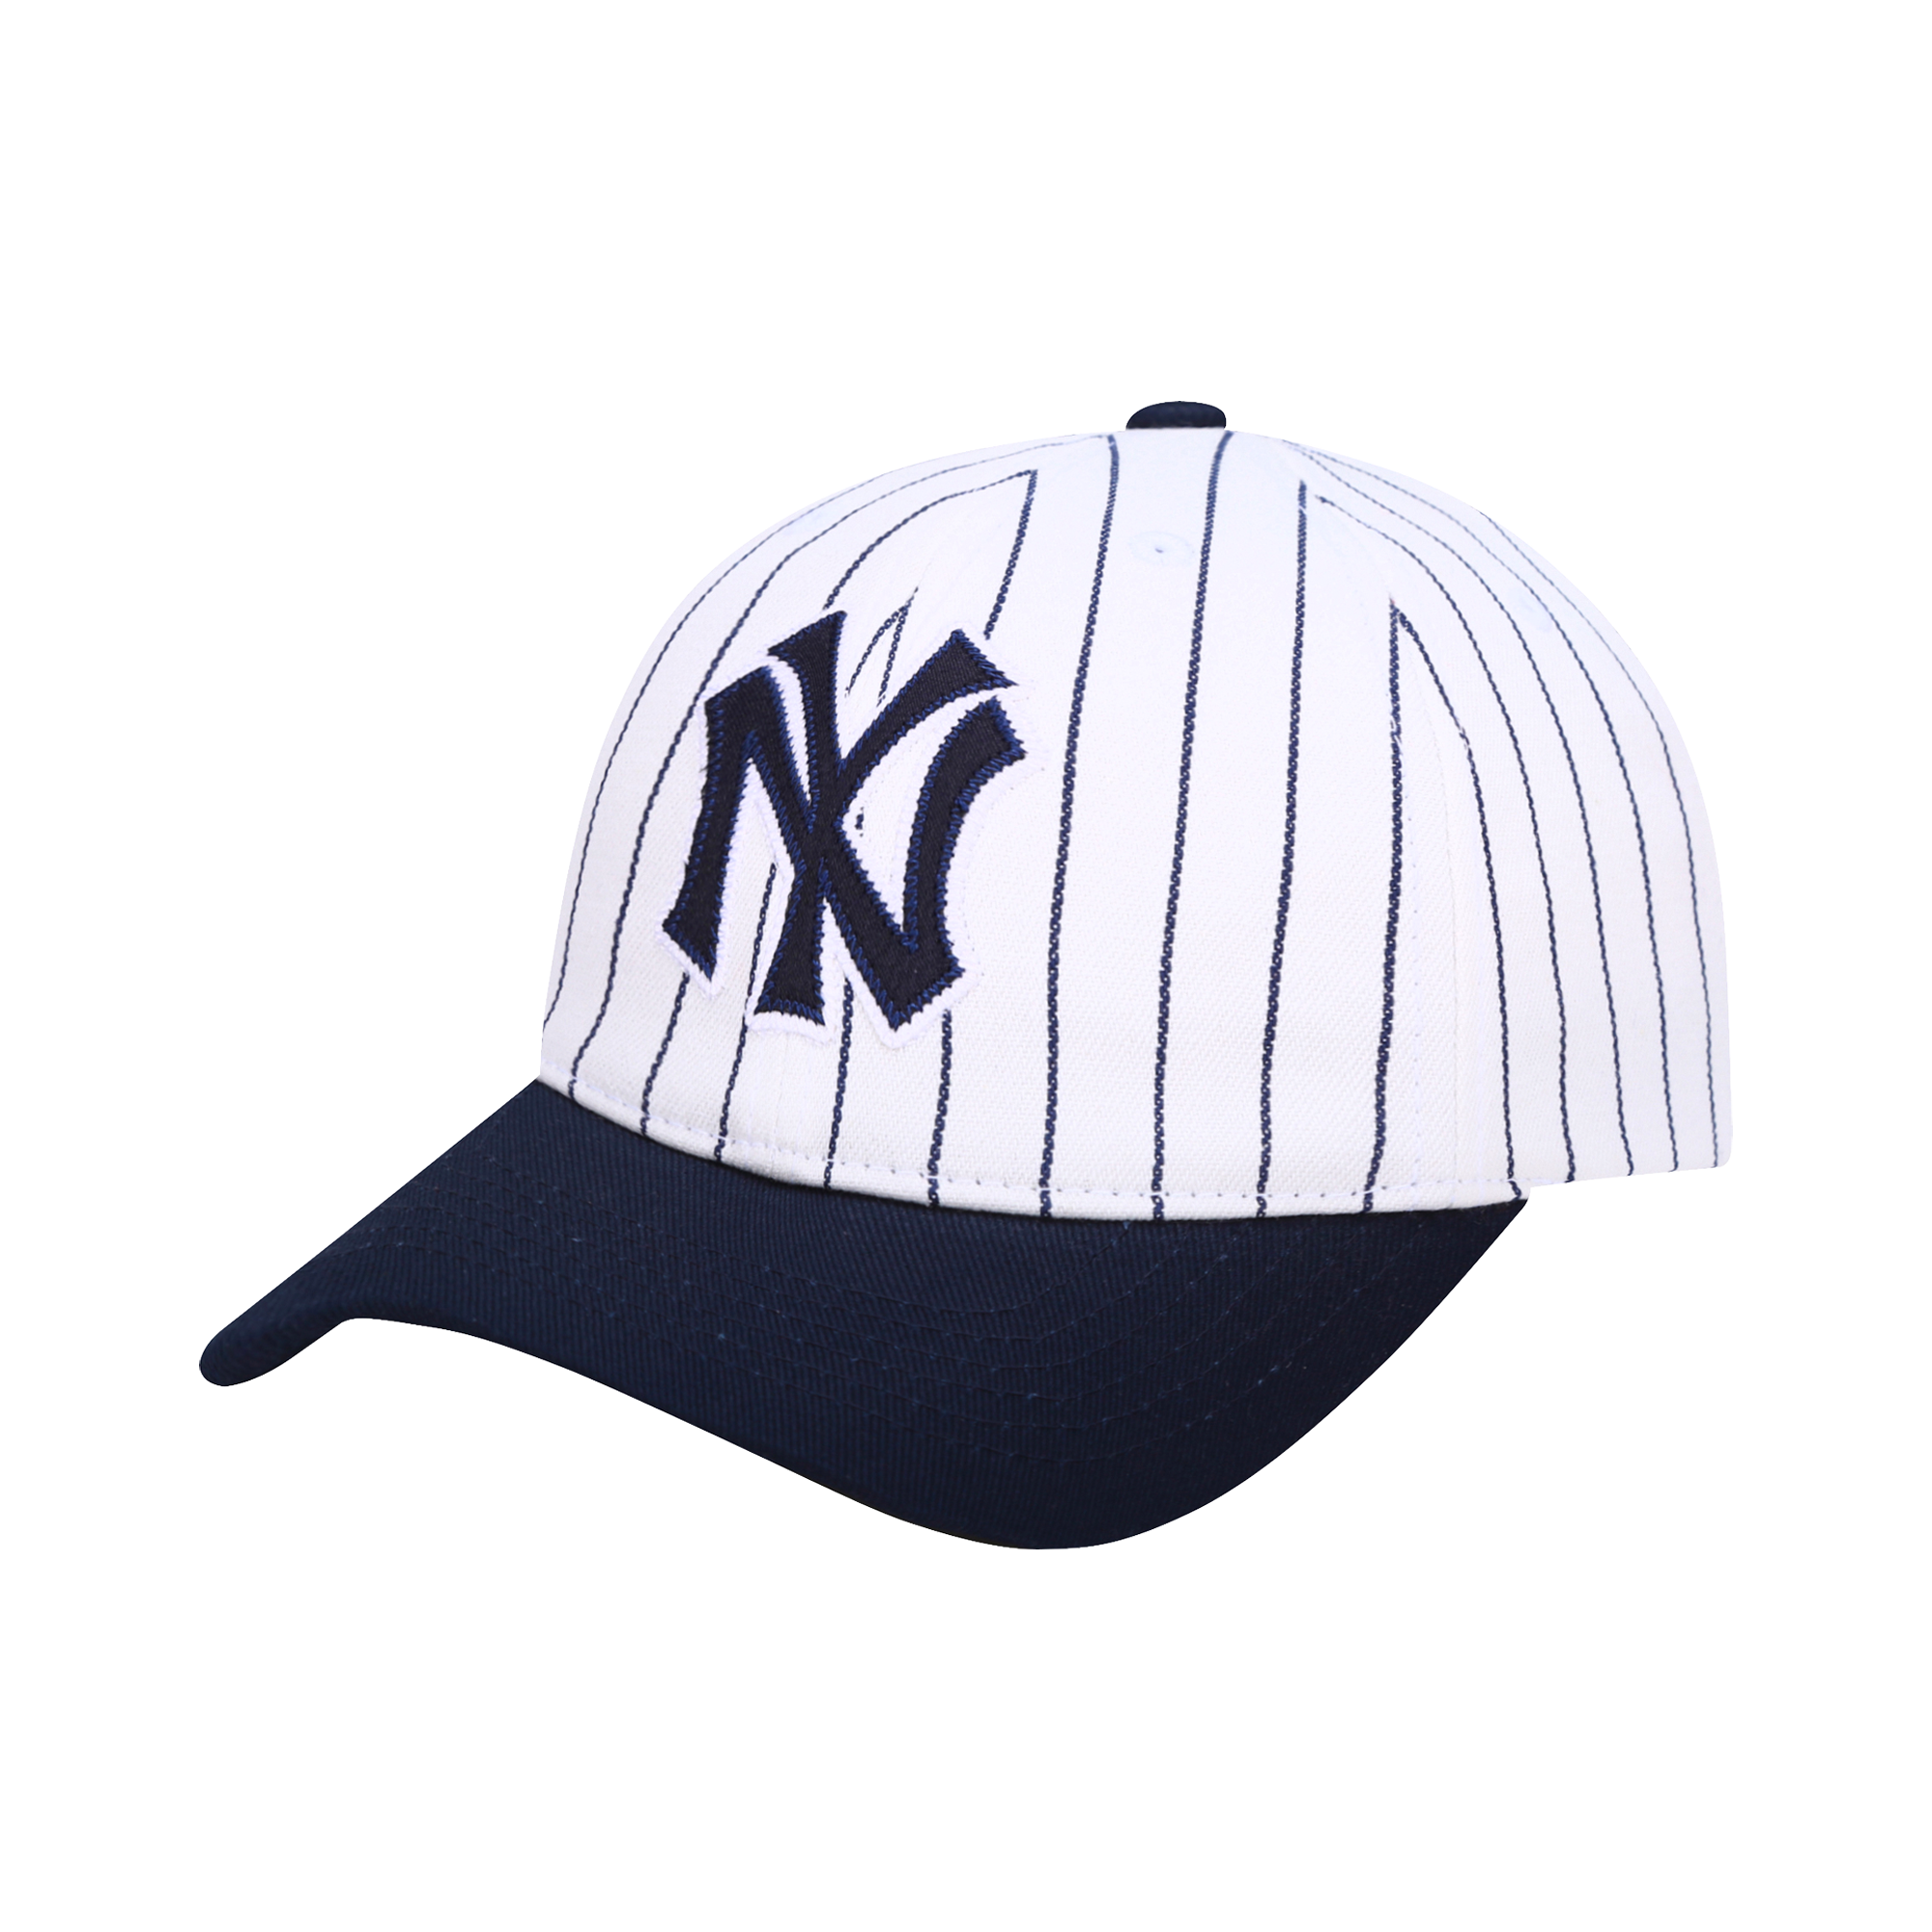 NEW YORK YANKEES COOPERS STRIPE JERSEY BALL CAP